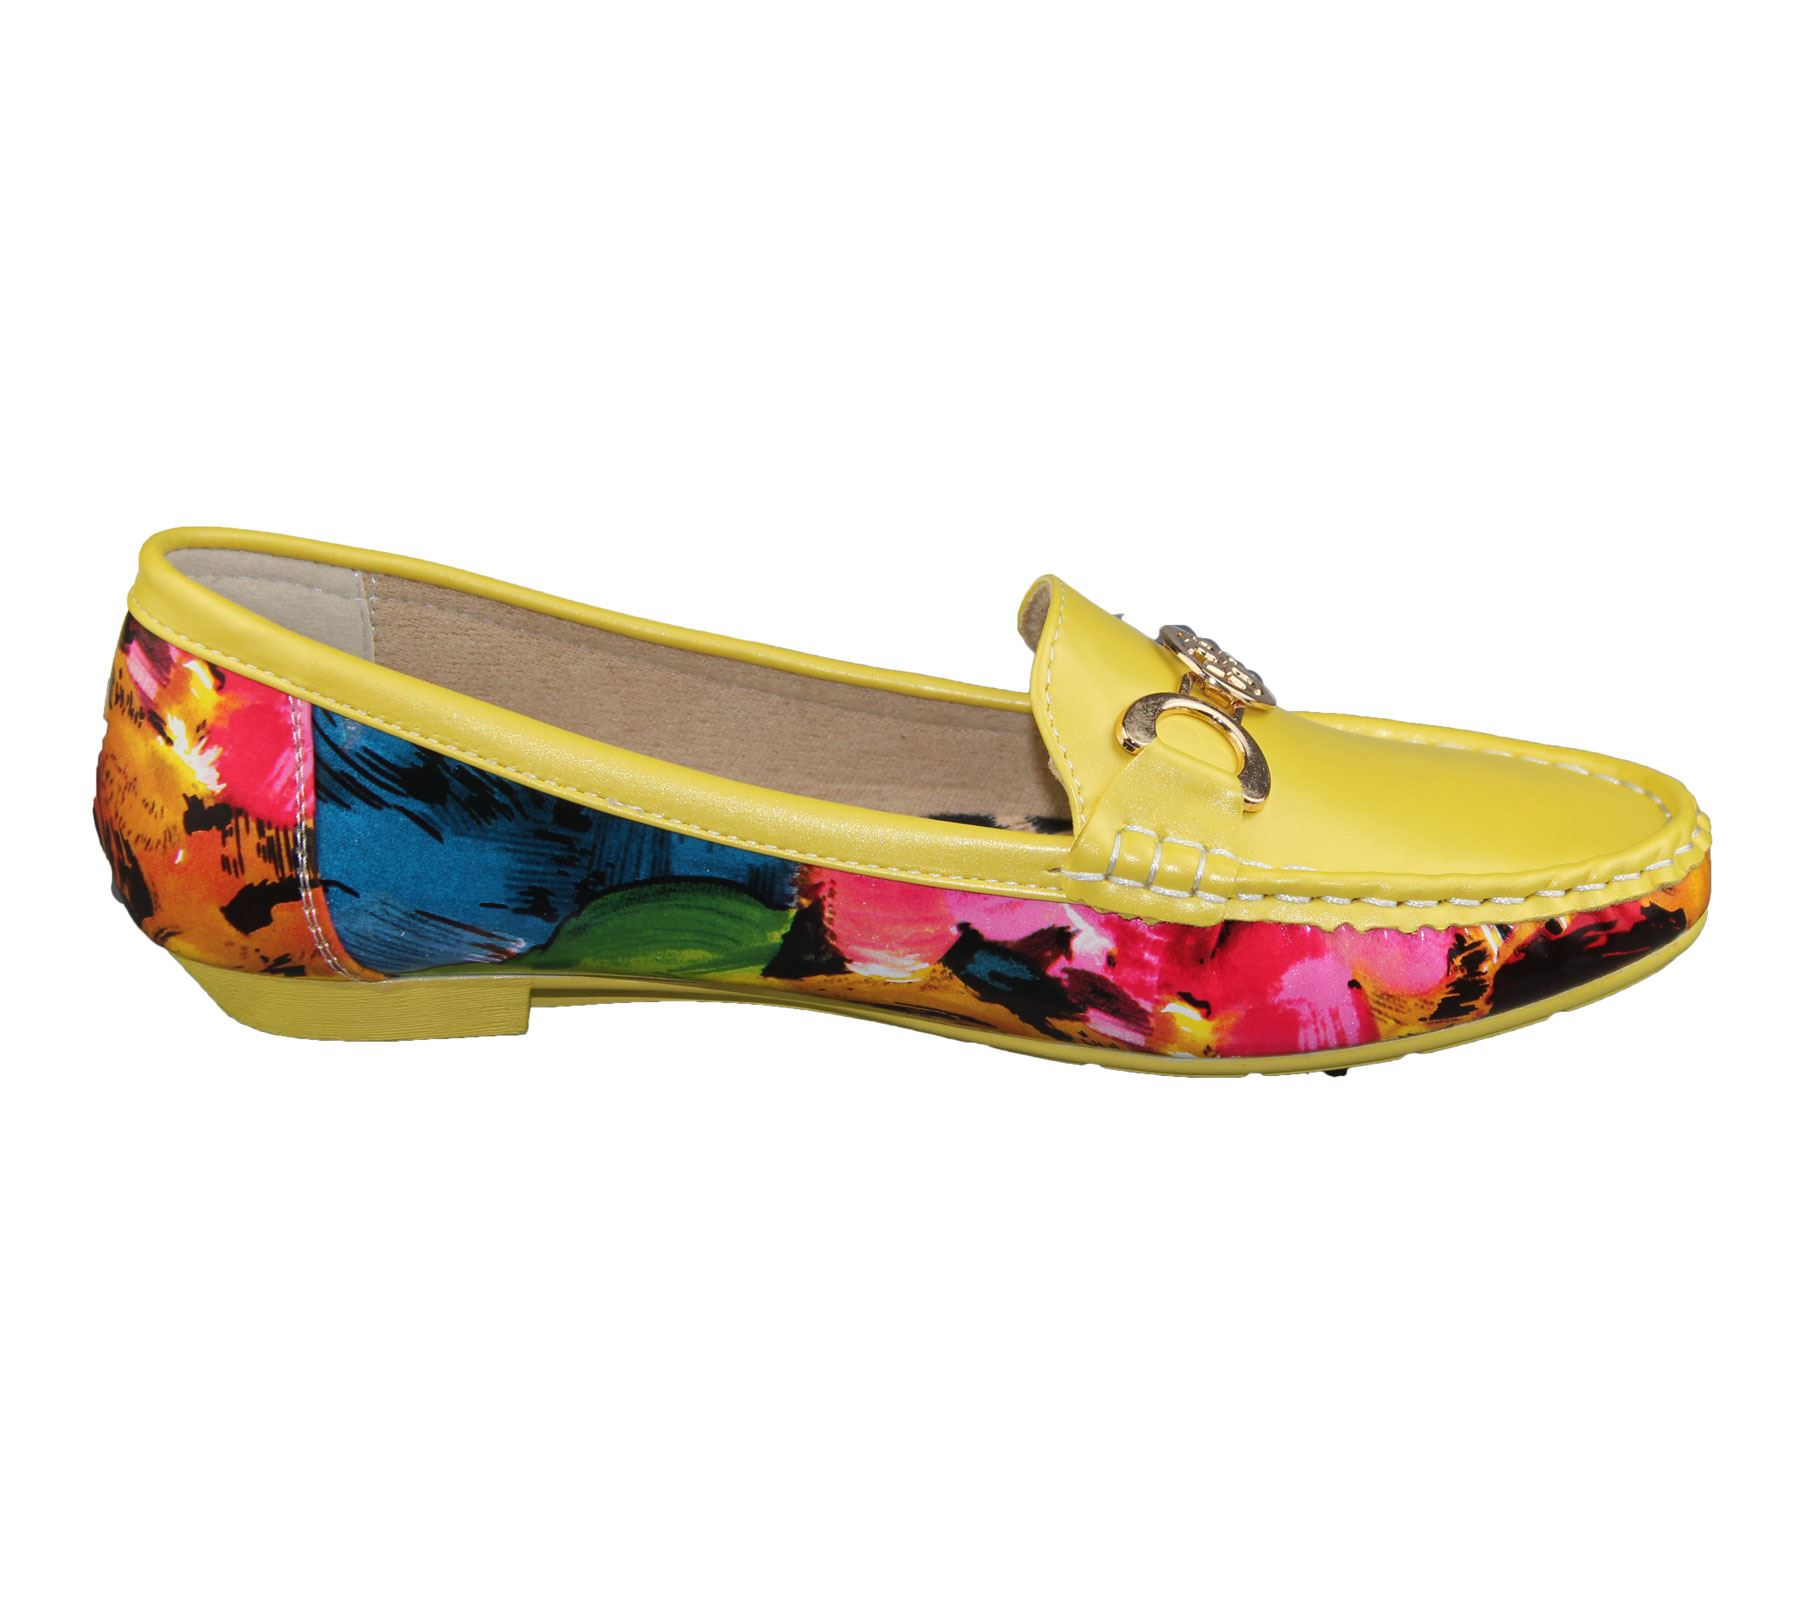 Womens-Loafers-Flat-Casual-Tassel-Ladies-Floral-Summer-Pumps-Espadrilles-Shoes thumbnail 6